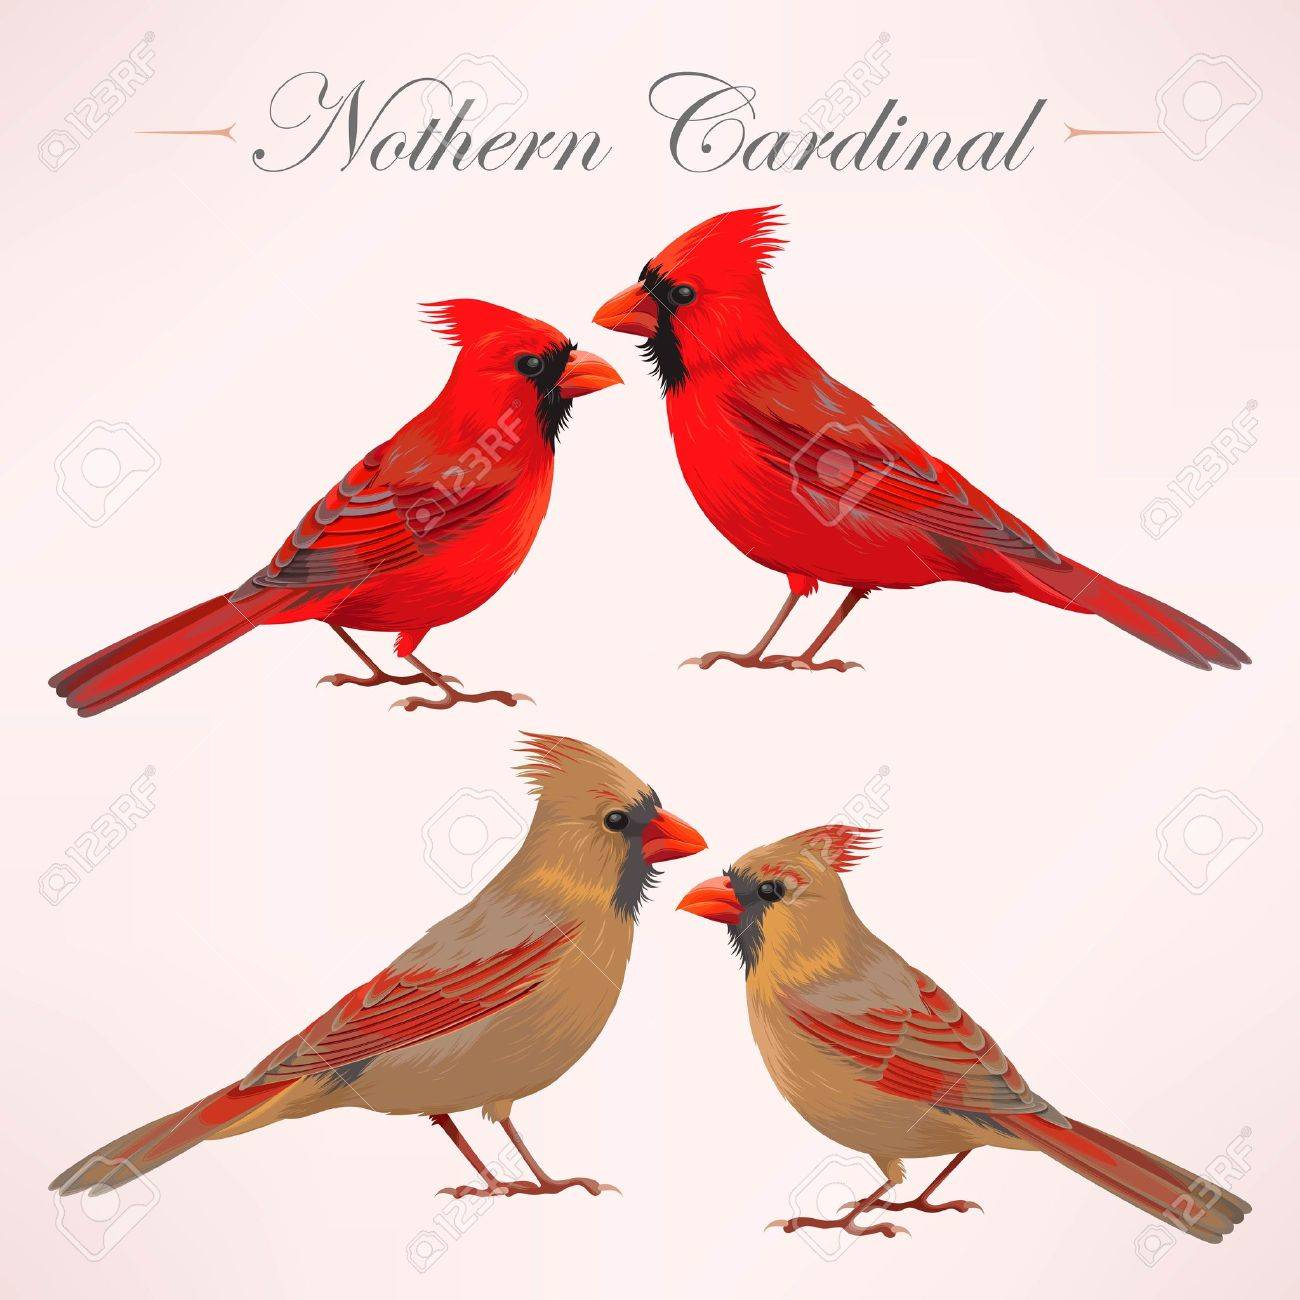 Vector set of high detailed nothern cardinals - 67100294